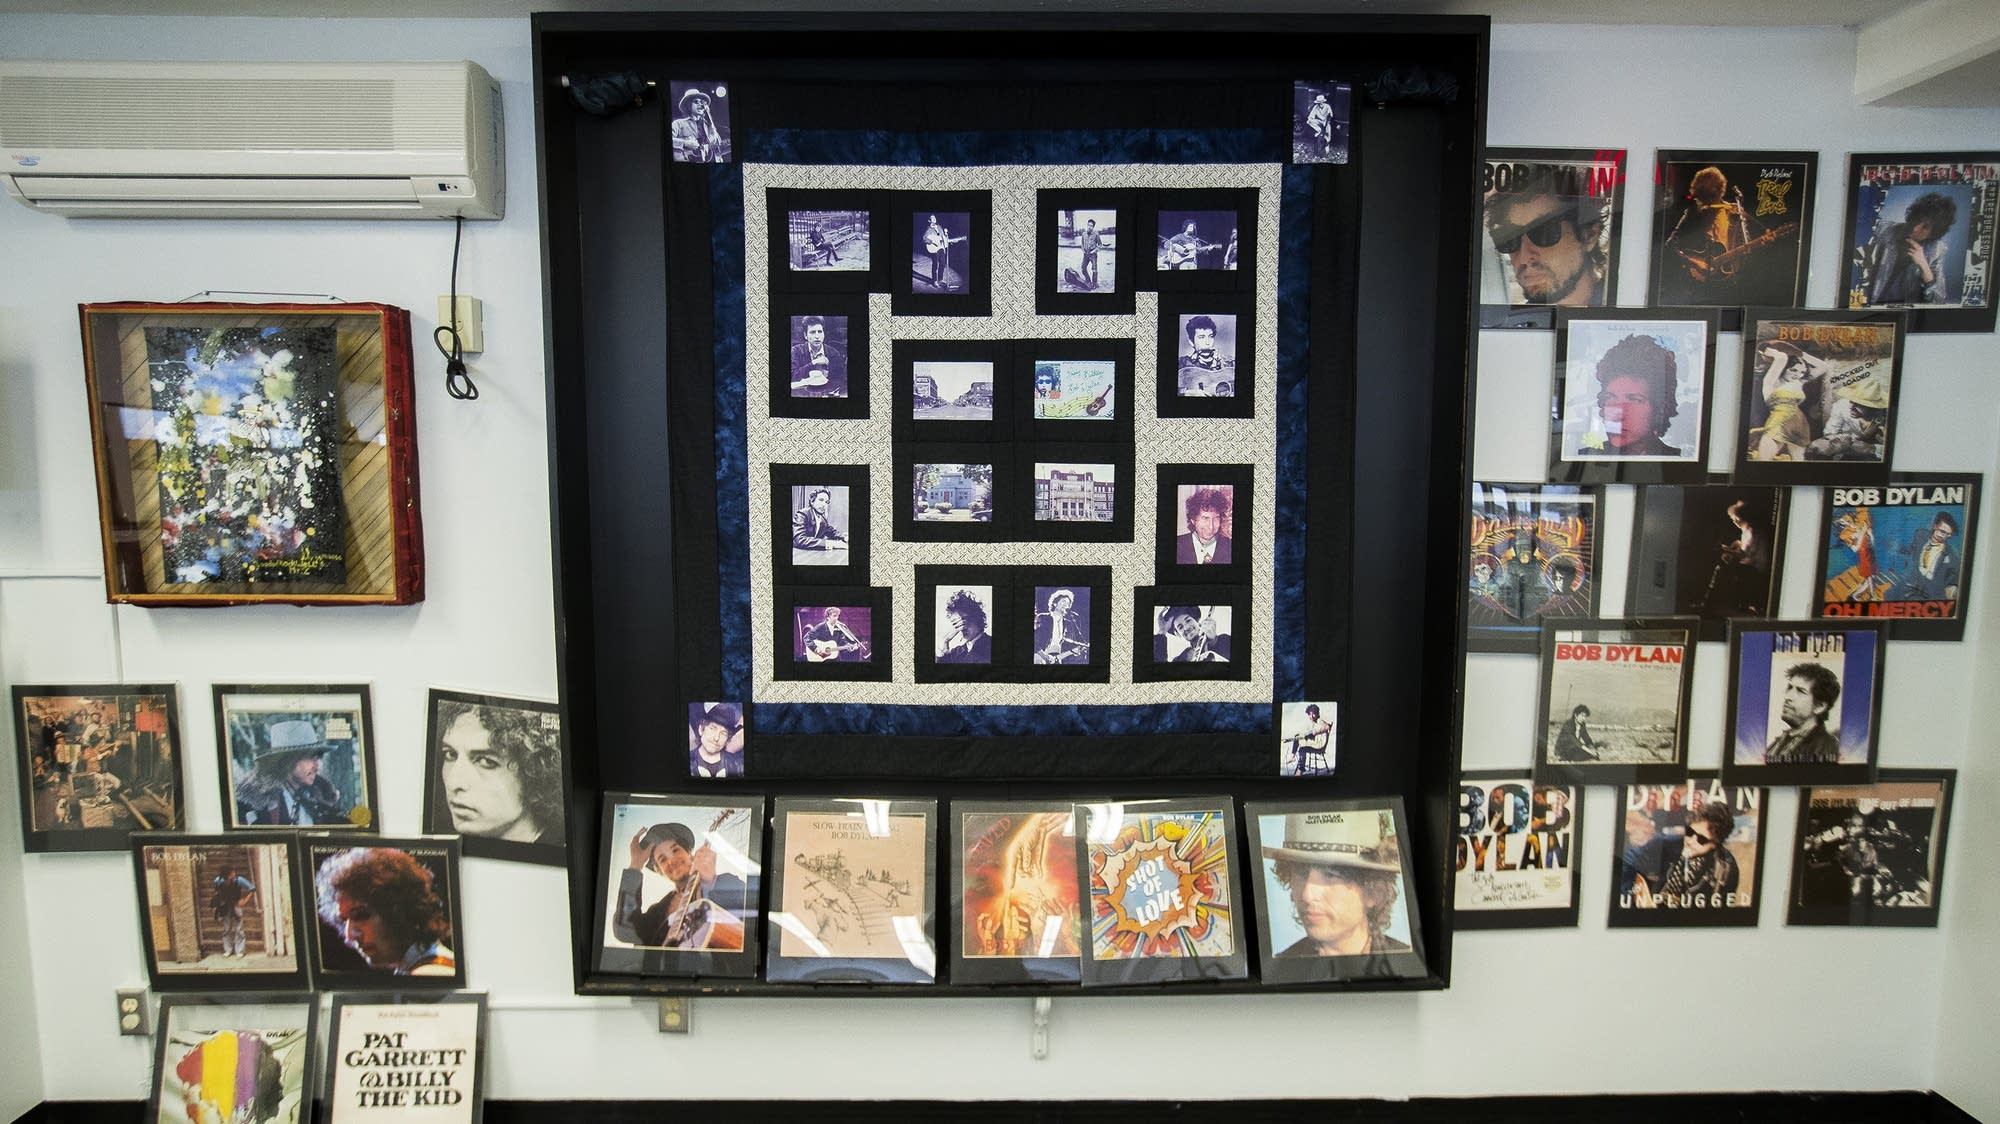 Bob Dylan exhibit at the Hibbing Public Library